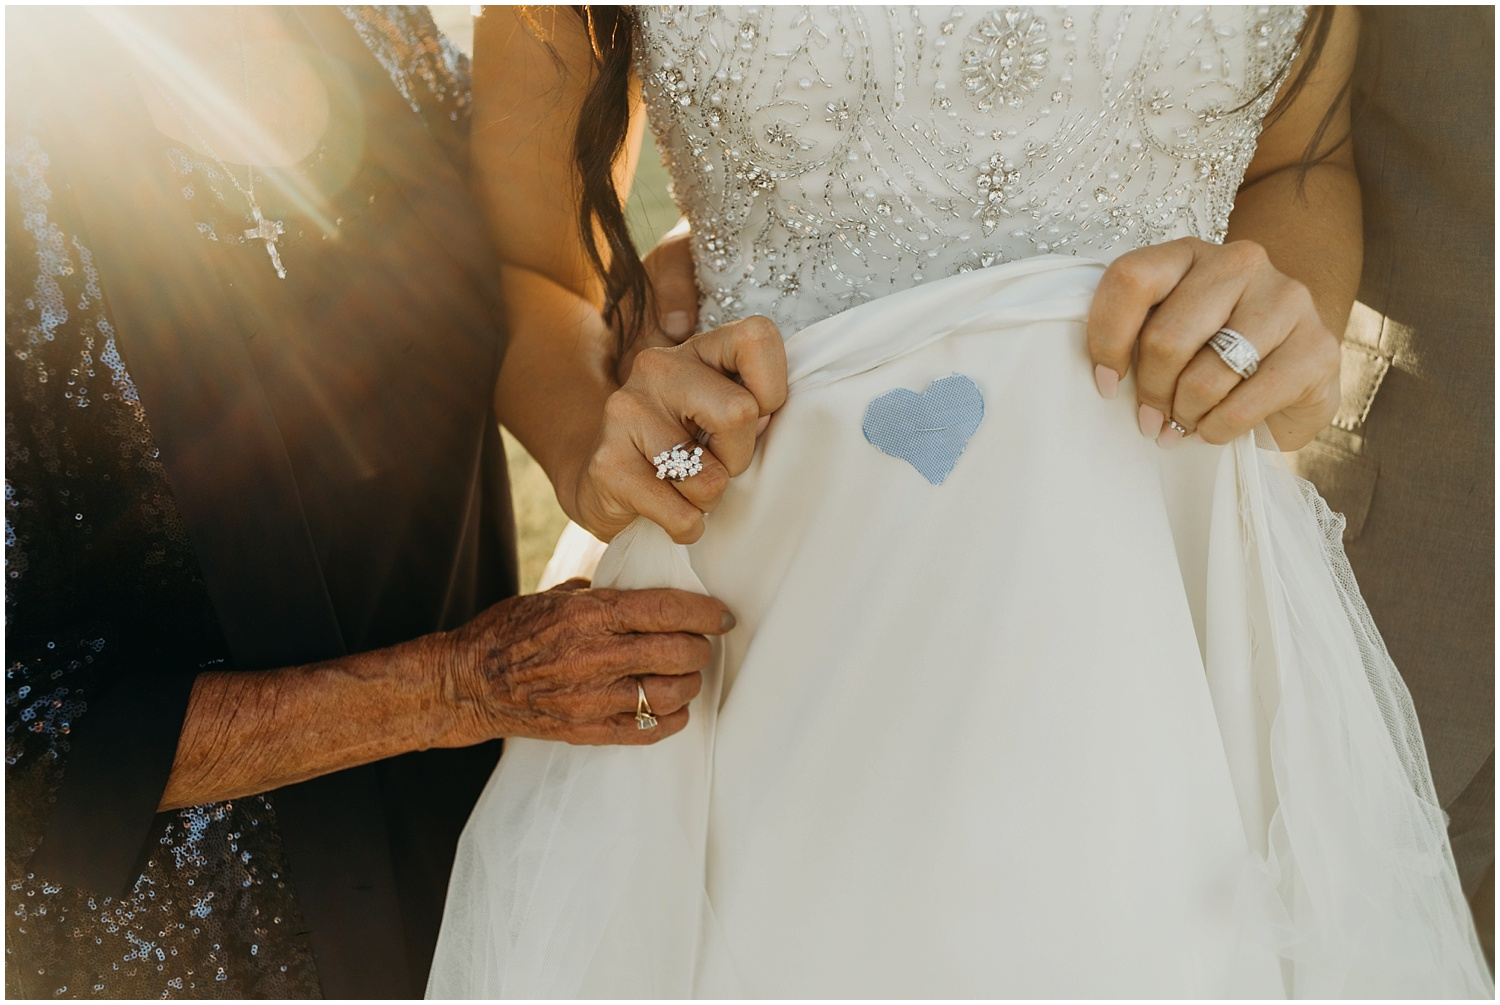 Bride's something blue pinned onto her wedding dress.